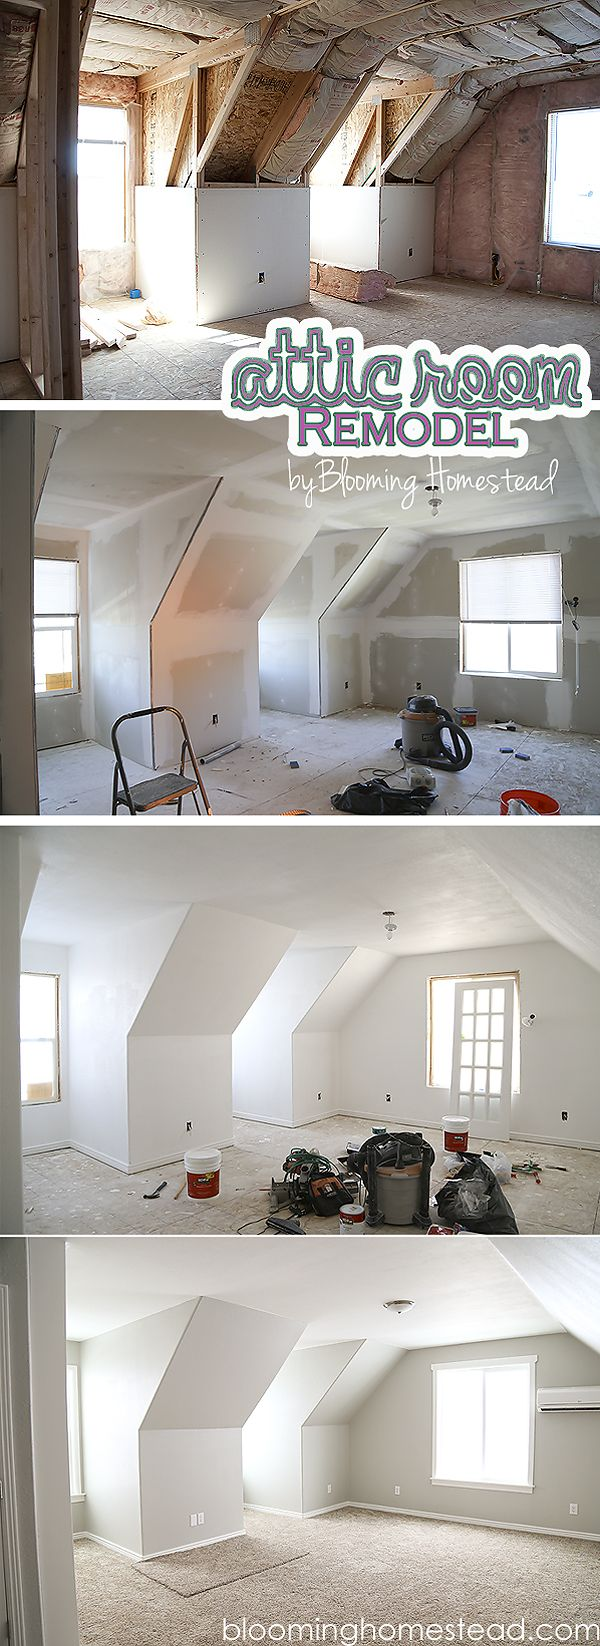 Attic Room Remodel before and afters by Blooming Homestead.